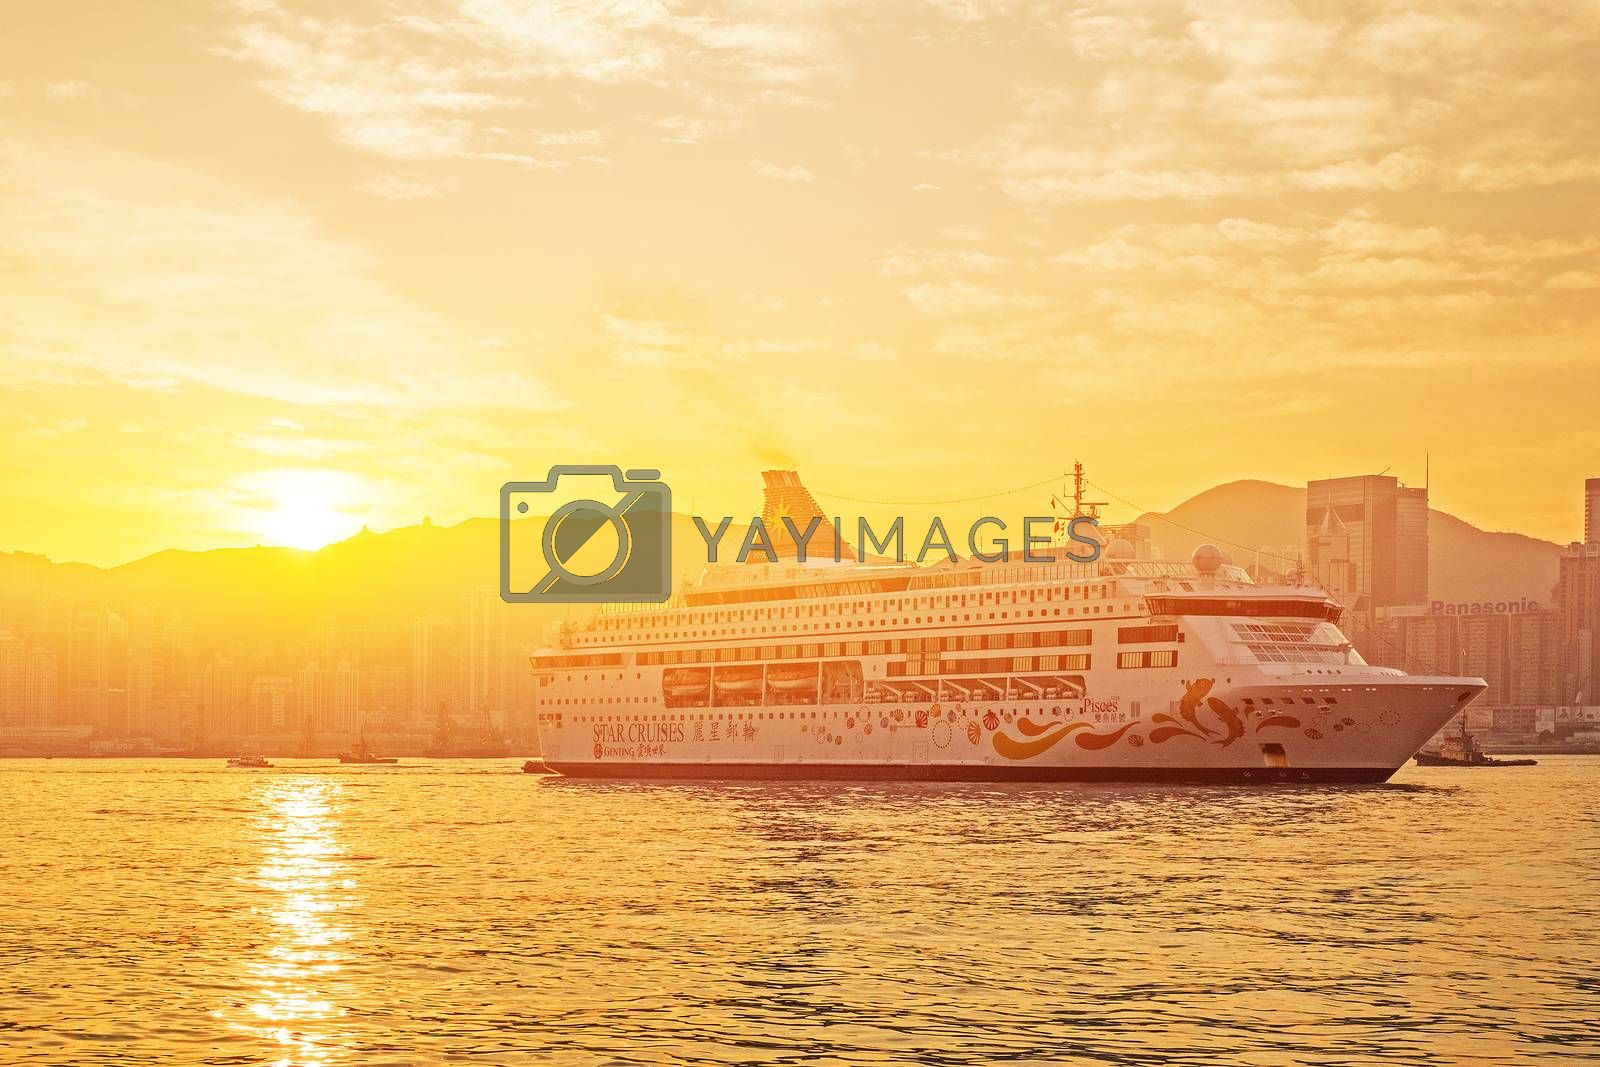 HONG KONG - JAN 13: Victoria Harbor on Jan 13, 2016 in Hong Kong. Big Cruise Ship departed from Ocean Terminal and drove across Victoria Harbor at sunrise.